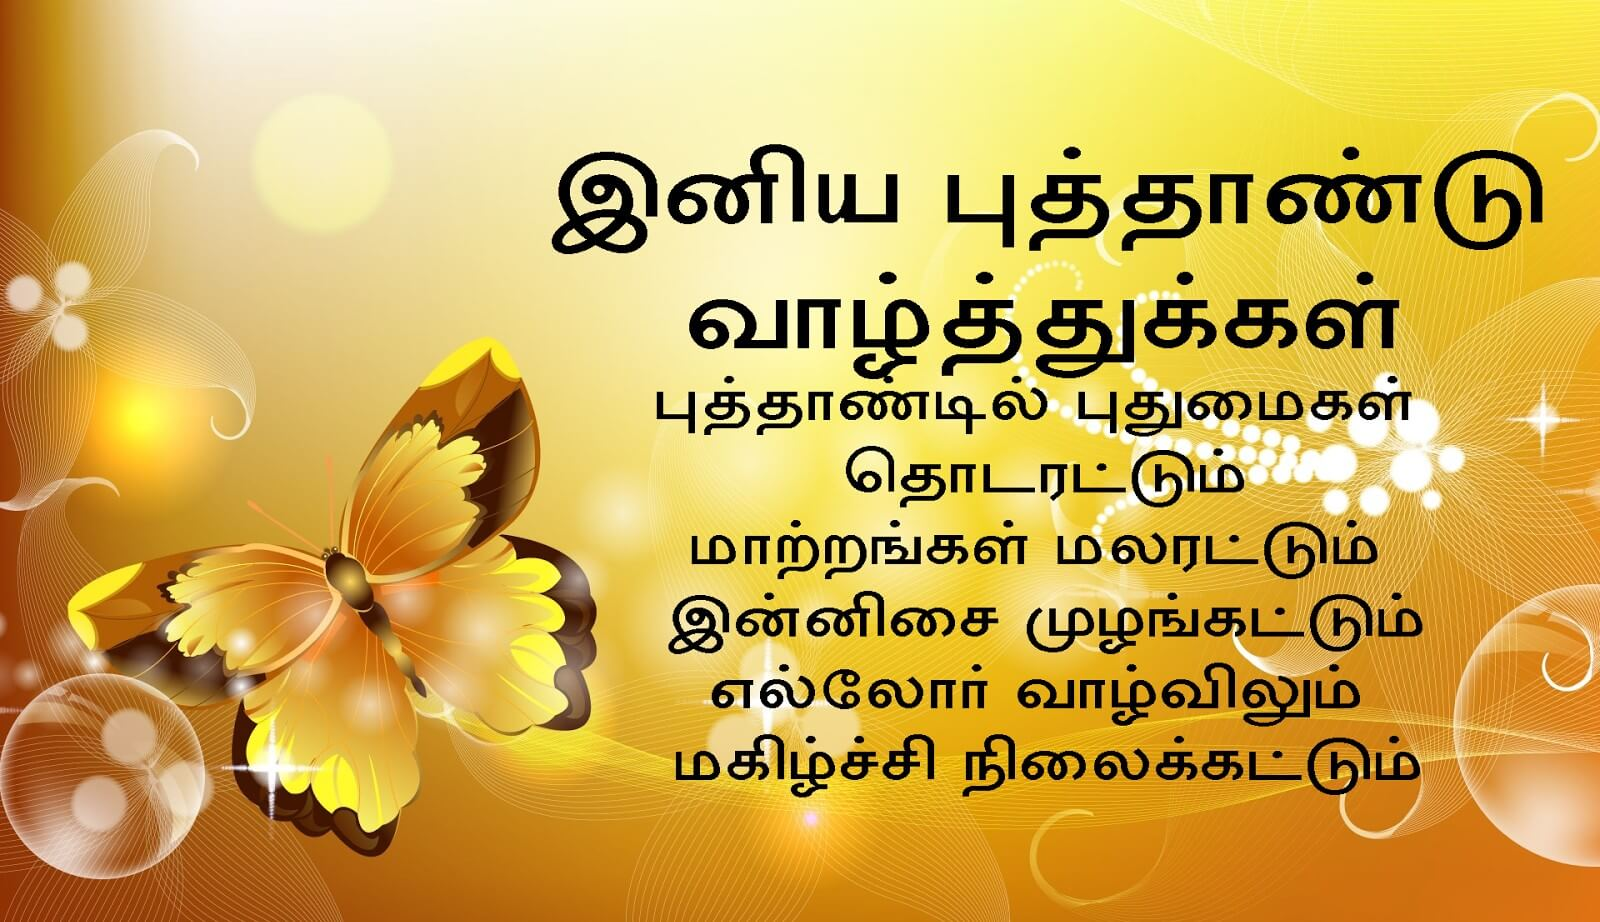 happy tamil new year wishes tamil kavithai hd wallpaper